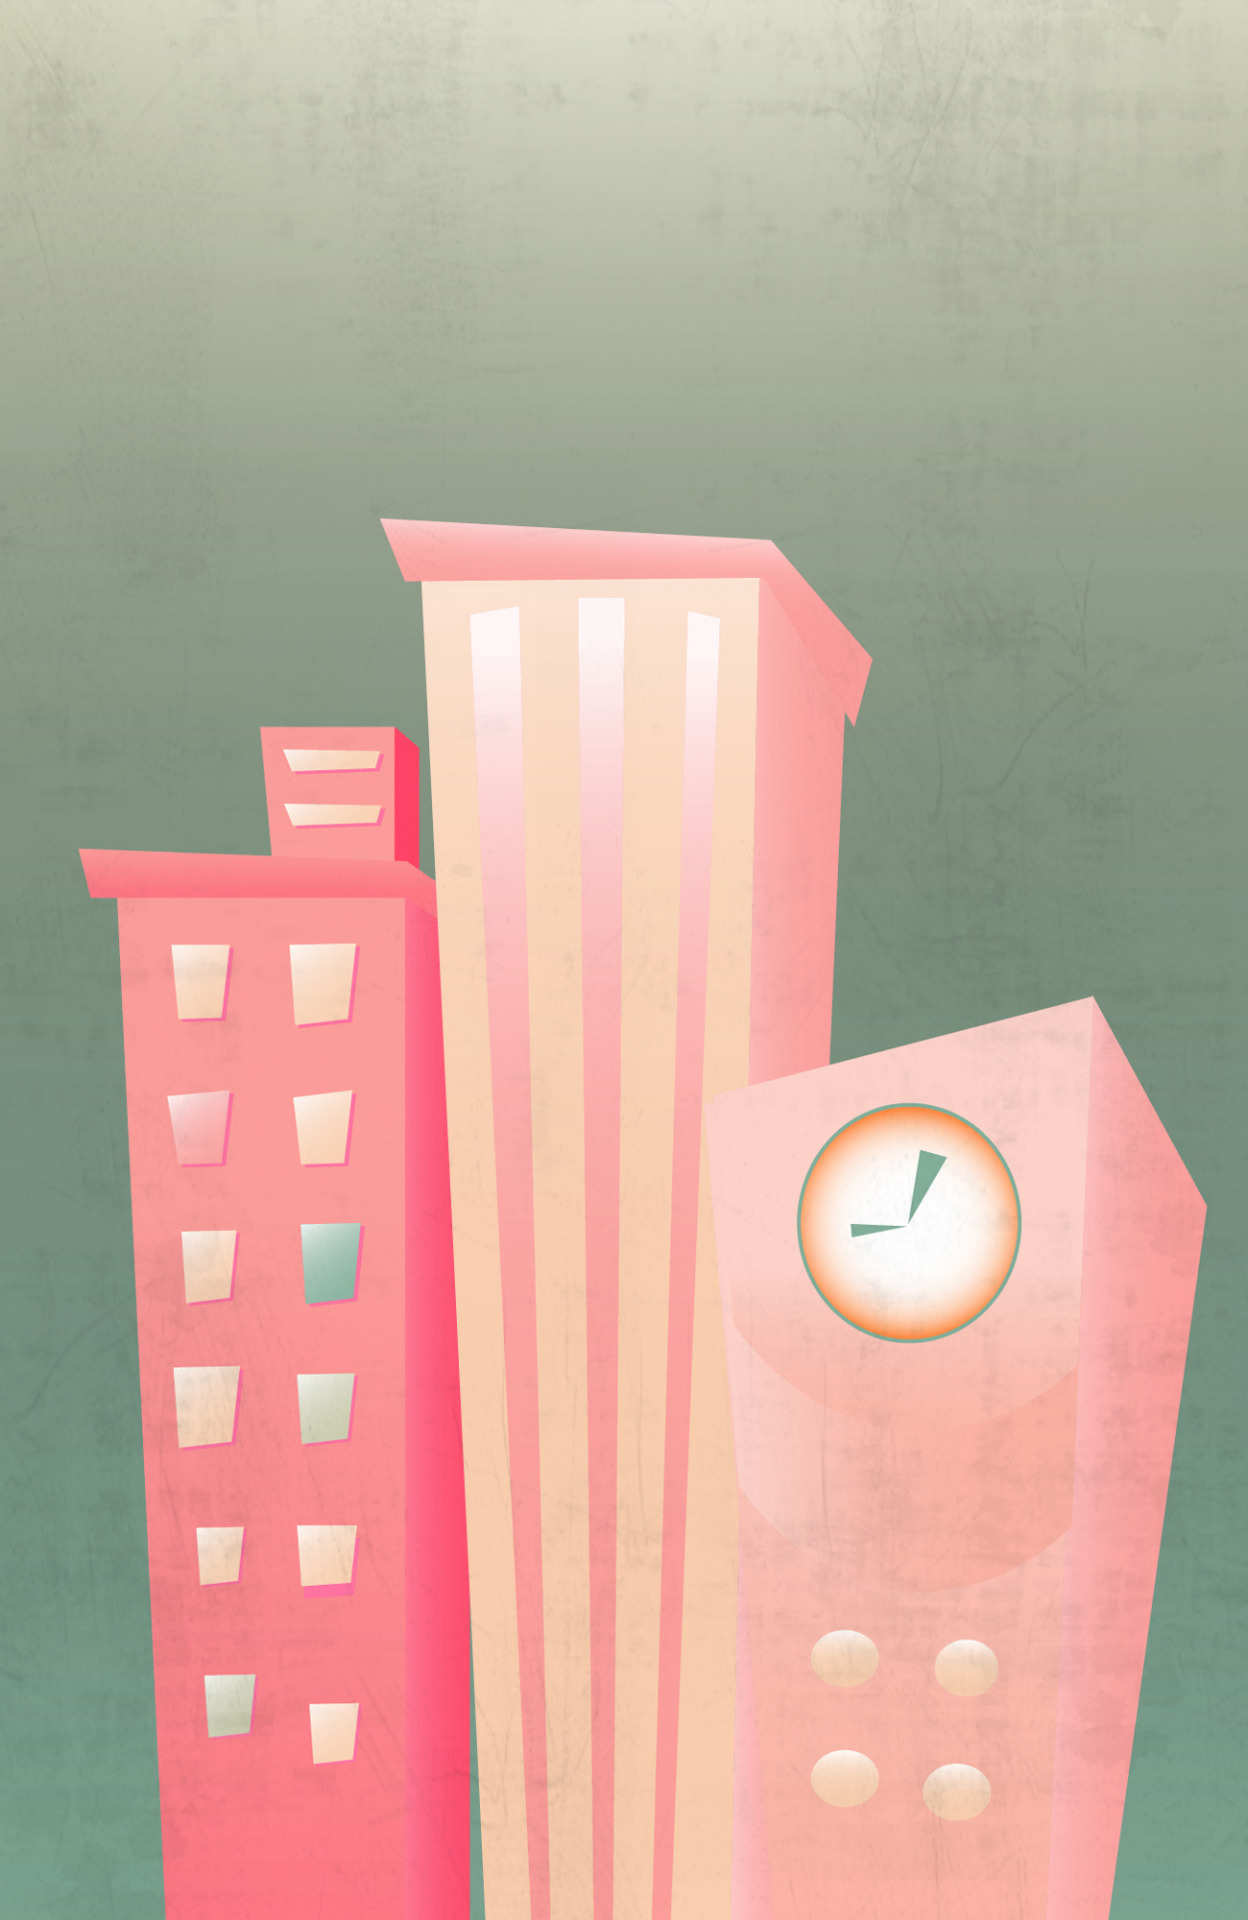 22 January 2014 - Flat Buildings    Stepping out of my comfort zone, without C4D. Trying something flat with Illustrator.    1hour. Illustrator, Photoshop.